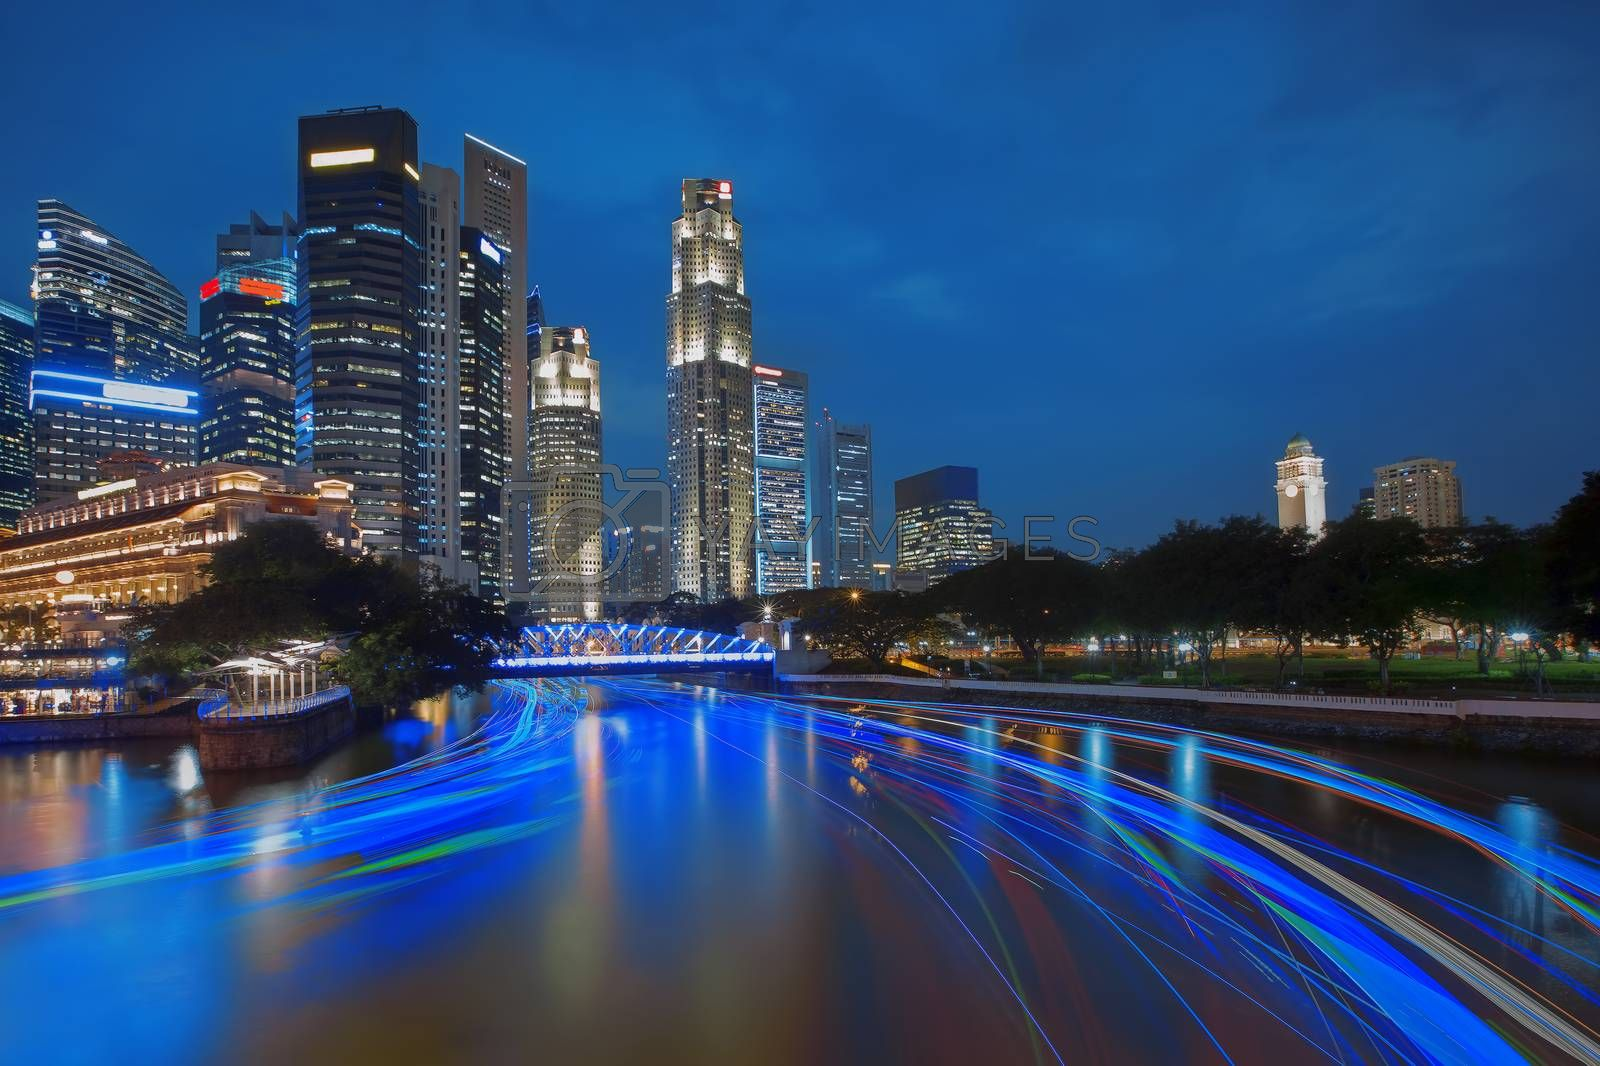 Royalty free image of Singapore River Cruise by kjorgen